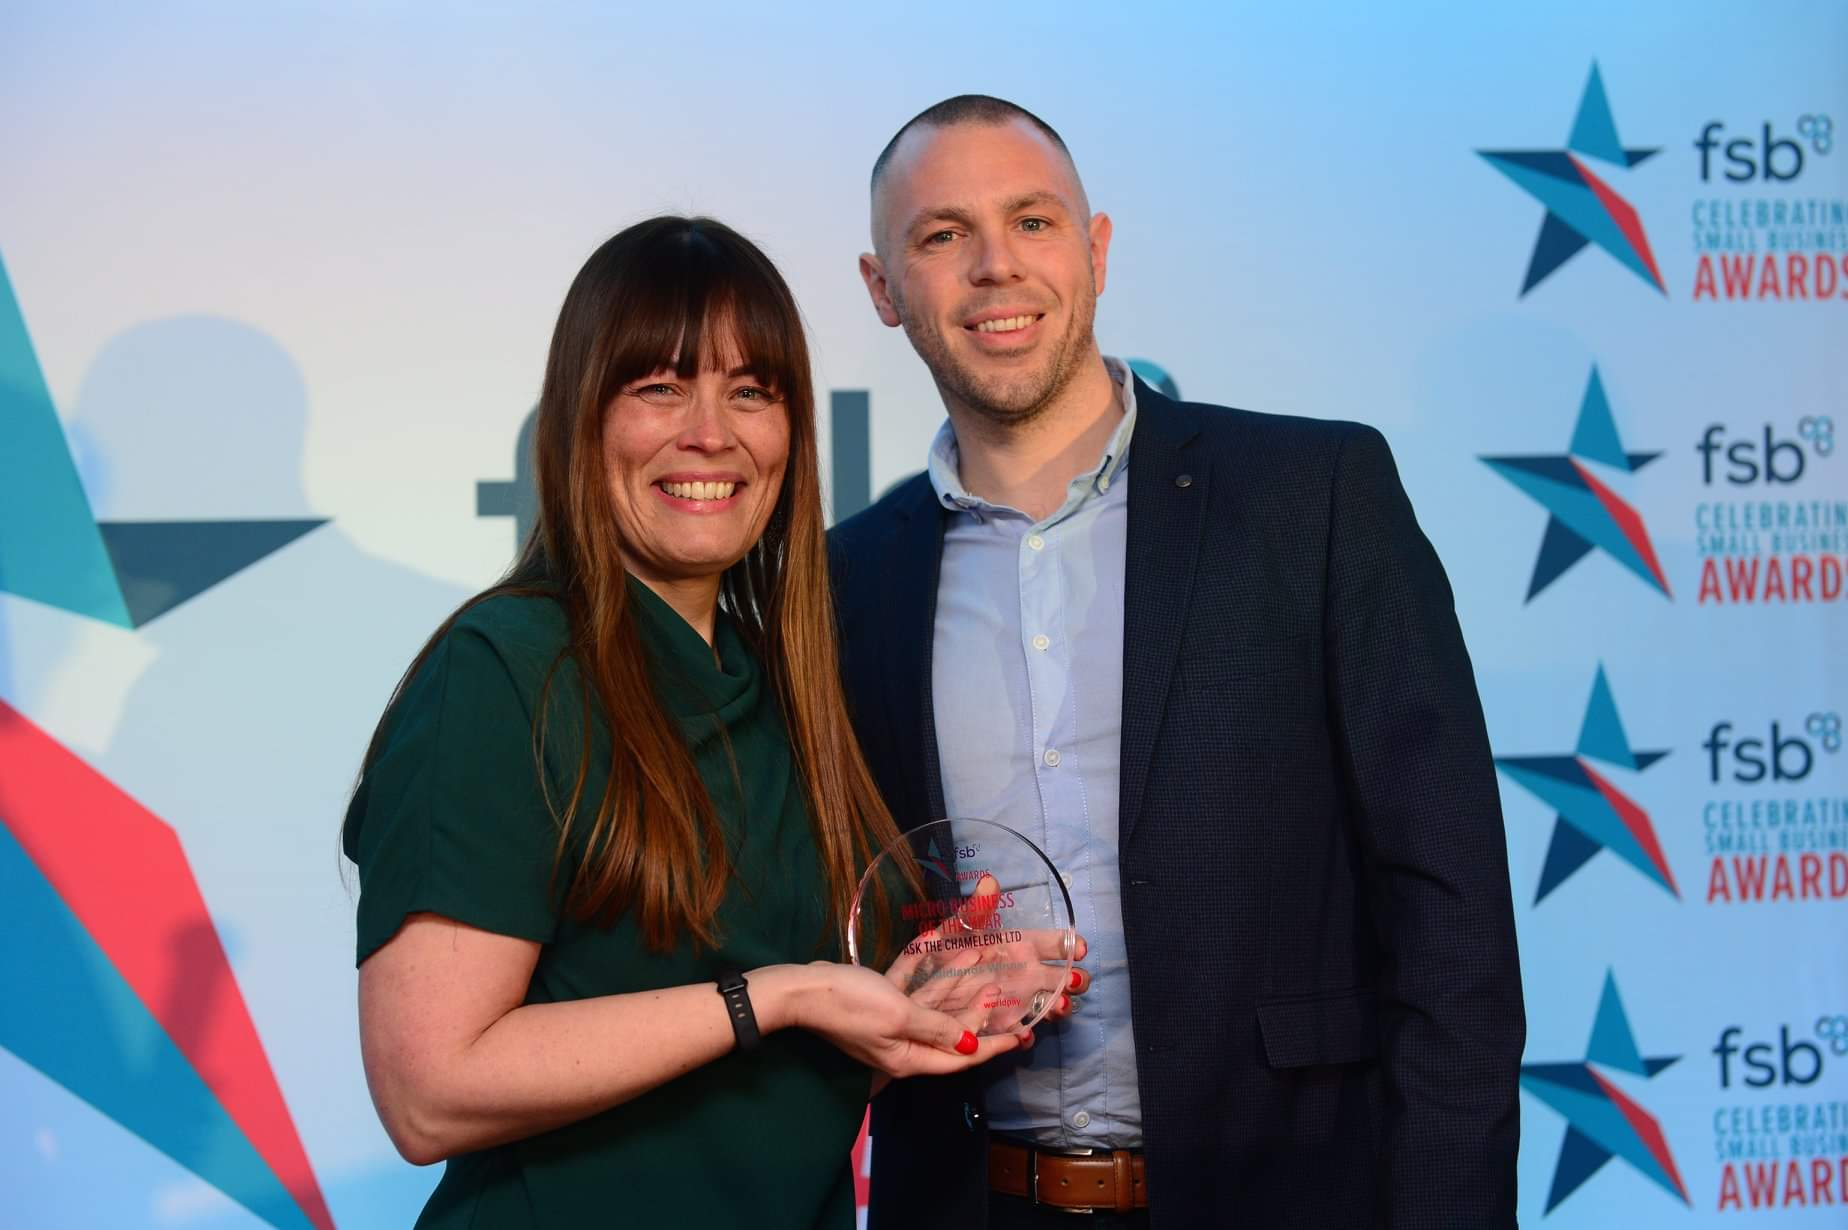 Rachel_Hayward,_Ask_the_Chameleon_receives_award_from_category_sponsor_Tom_Wade,_Regional_Business_Manager_for_Worldpay.jpg